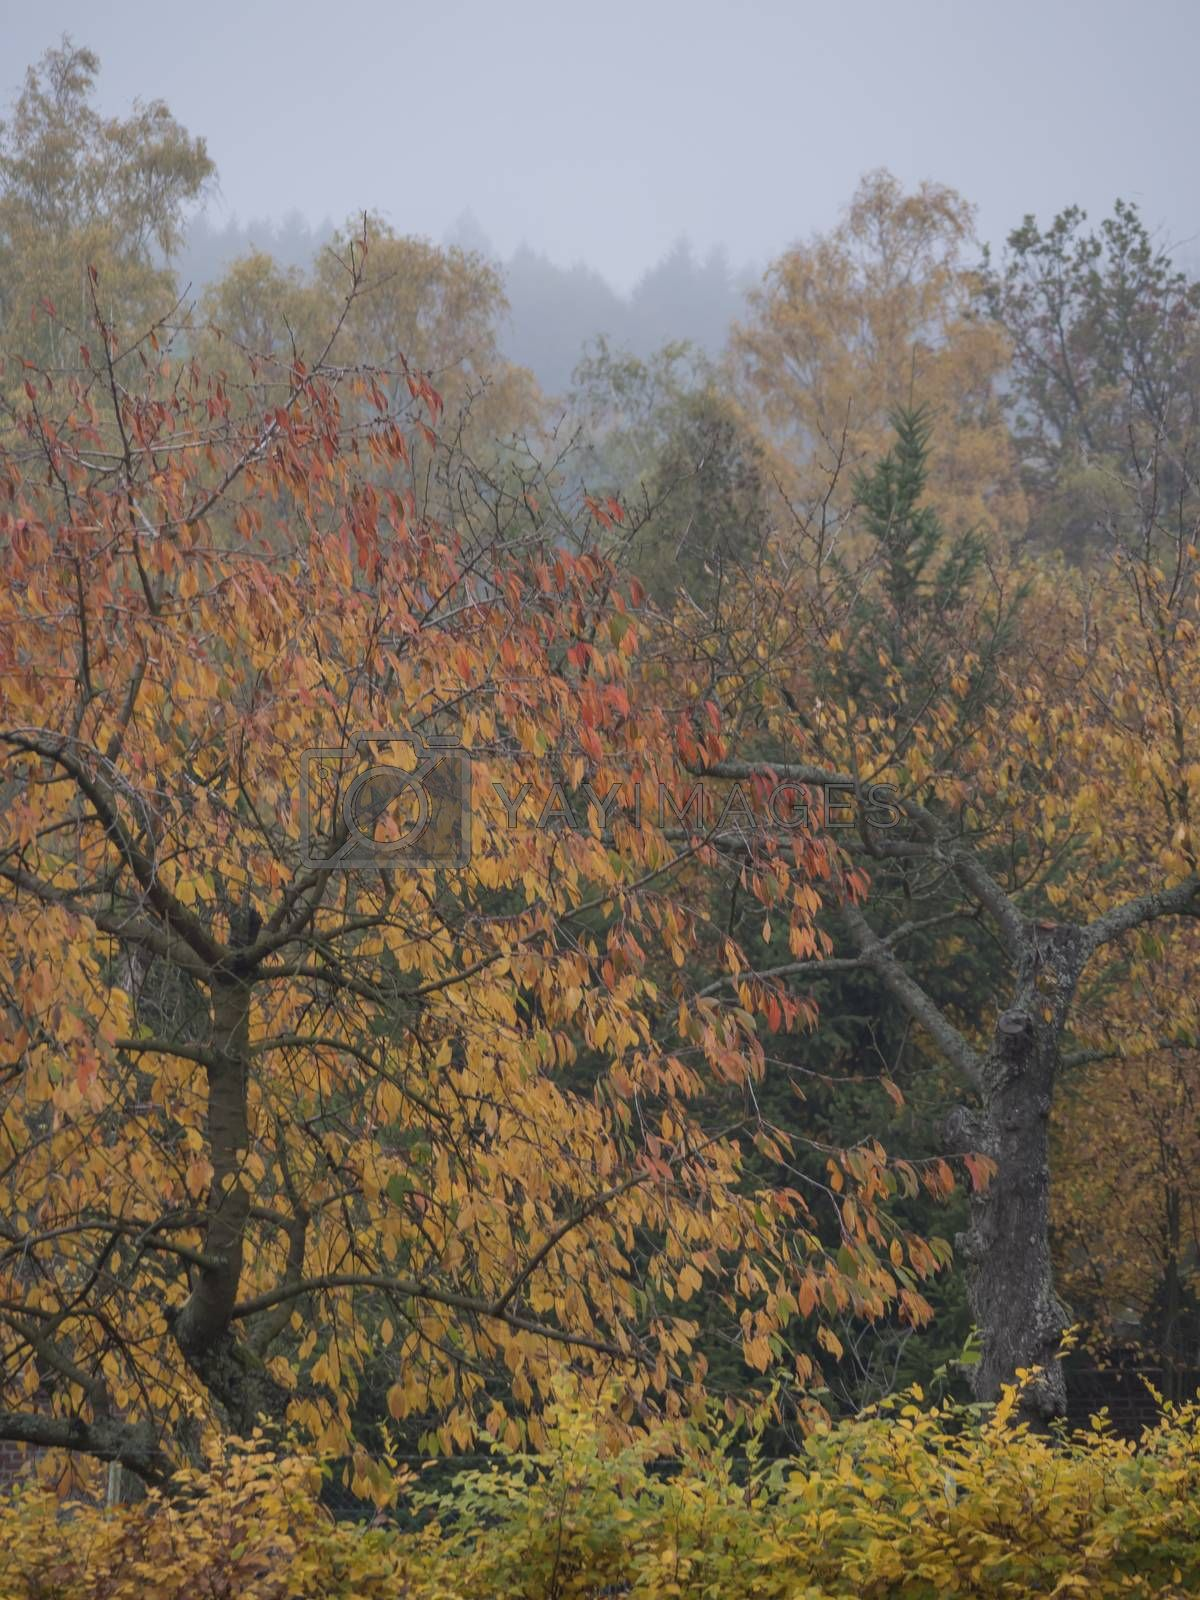 Vibrant Autumn Colours of the Leaves on Cherry Tree, deciduous trees and bush in moody foggy autumn day with mist background in a countryside.